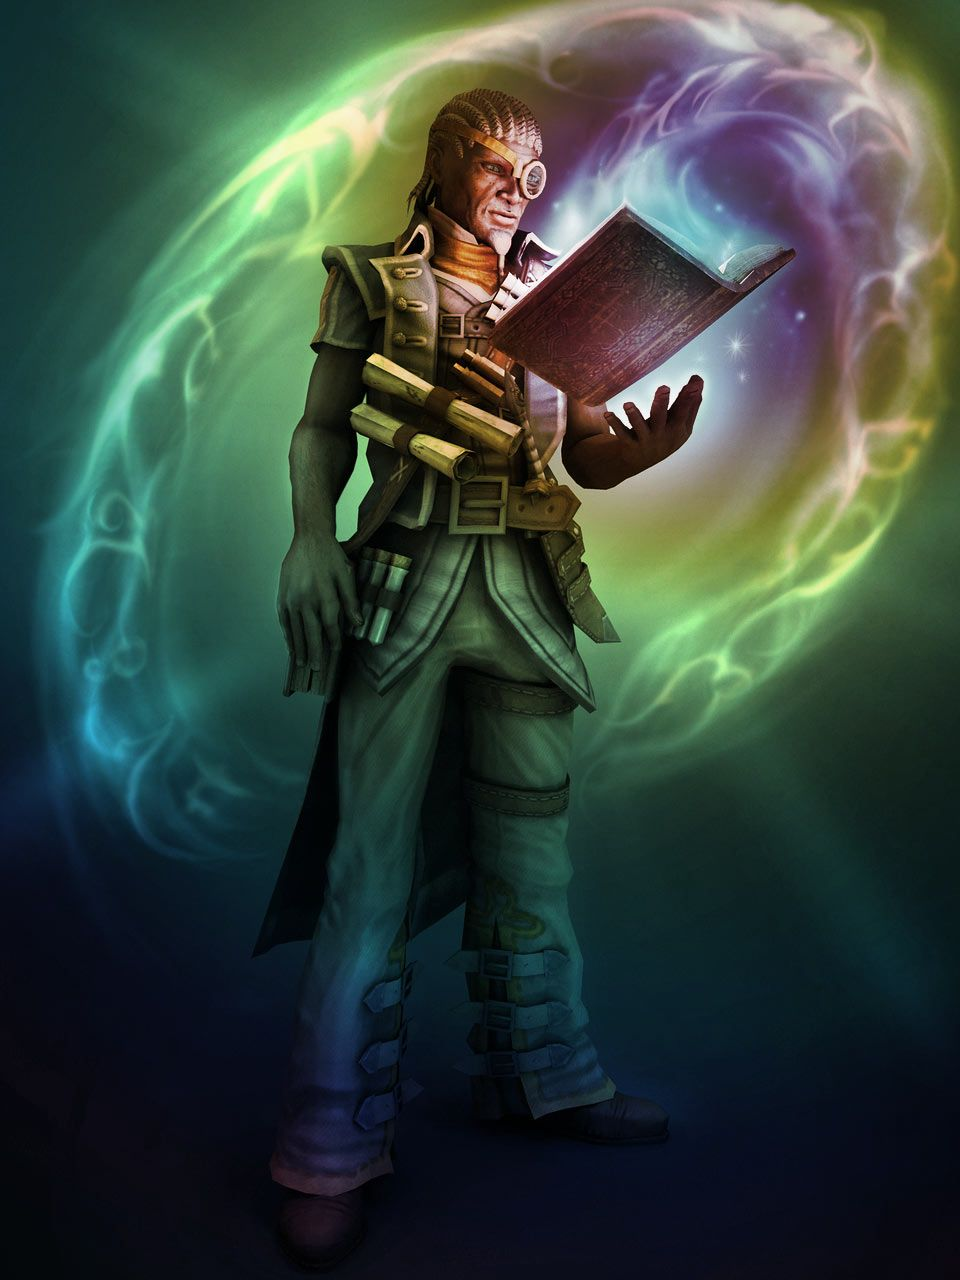 Wizard | warriors witches fantasy sci-fi post apocalyptic